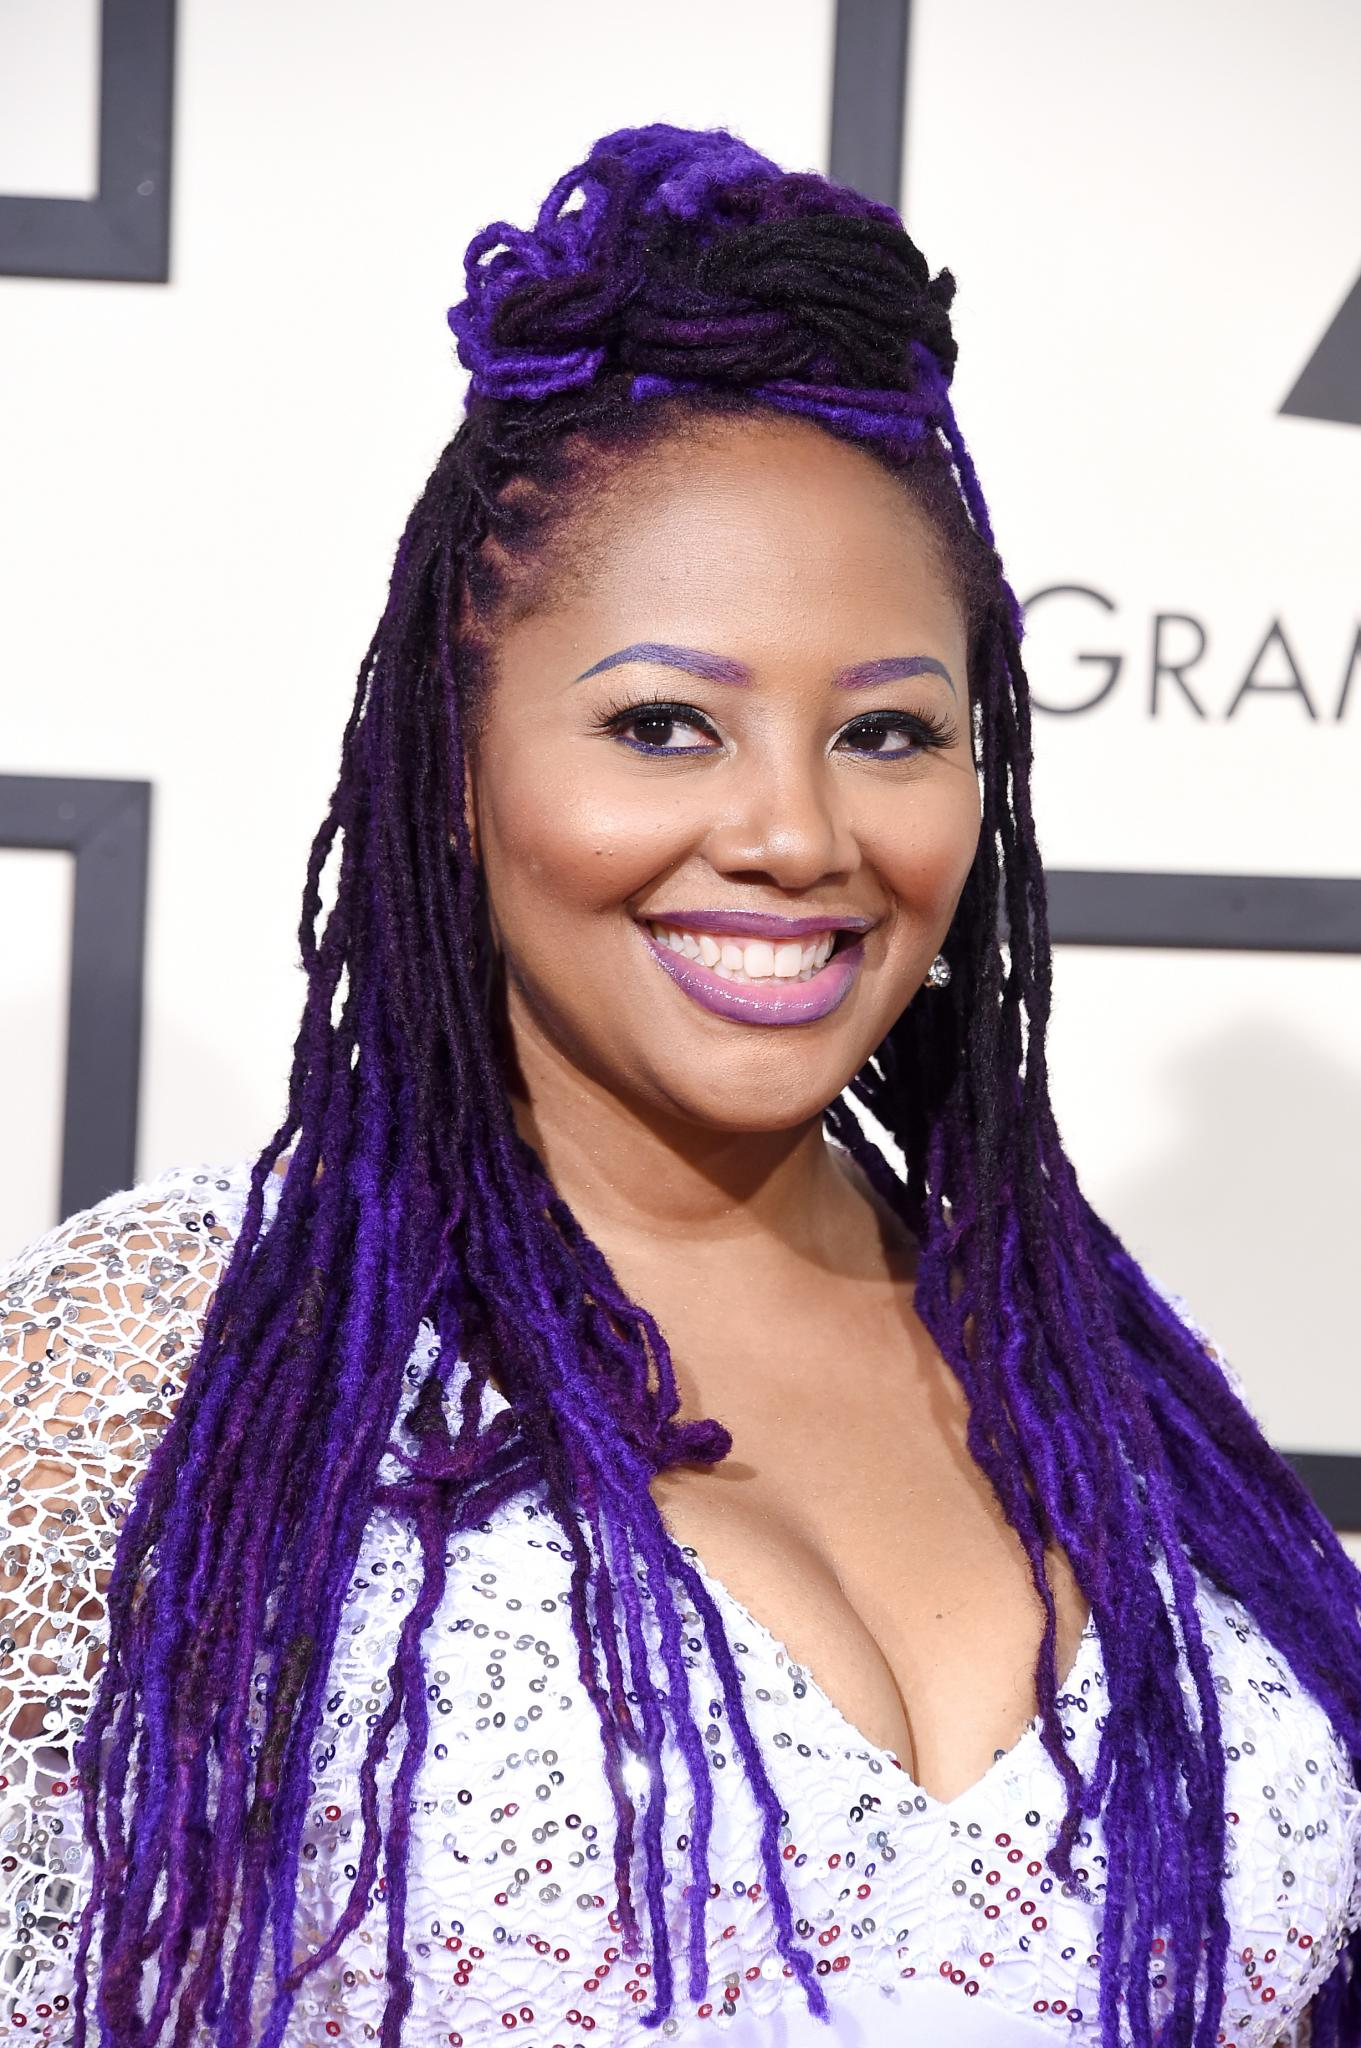 VIDEO: Lalah Hathaway On Why Her Record Label Didn't Approve of Locs